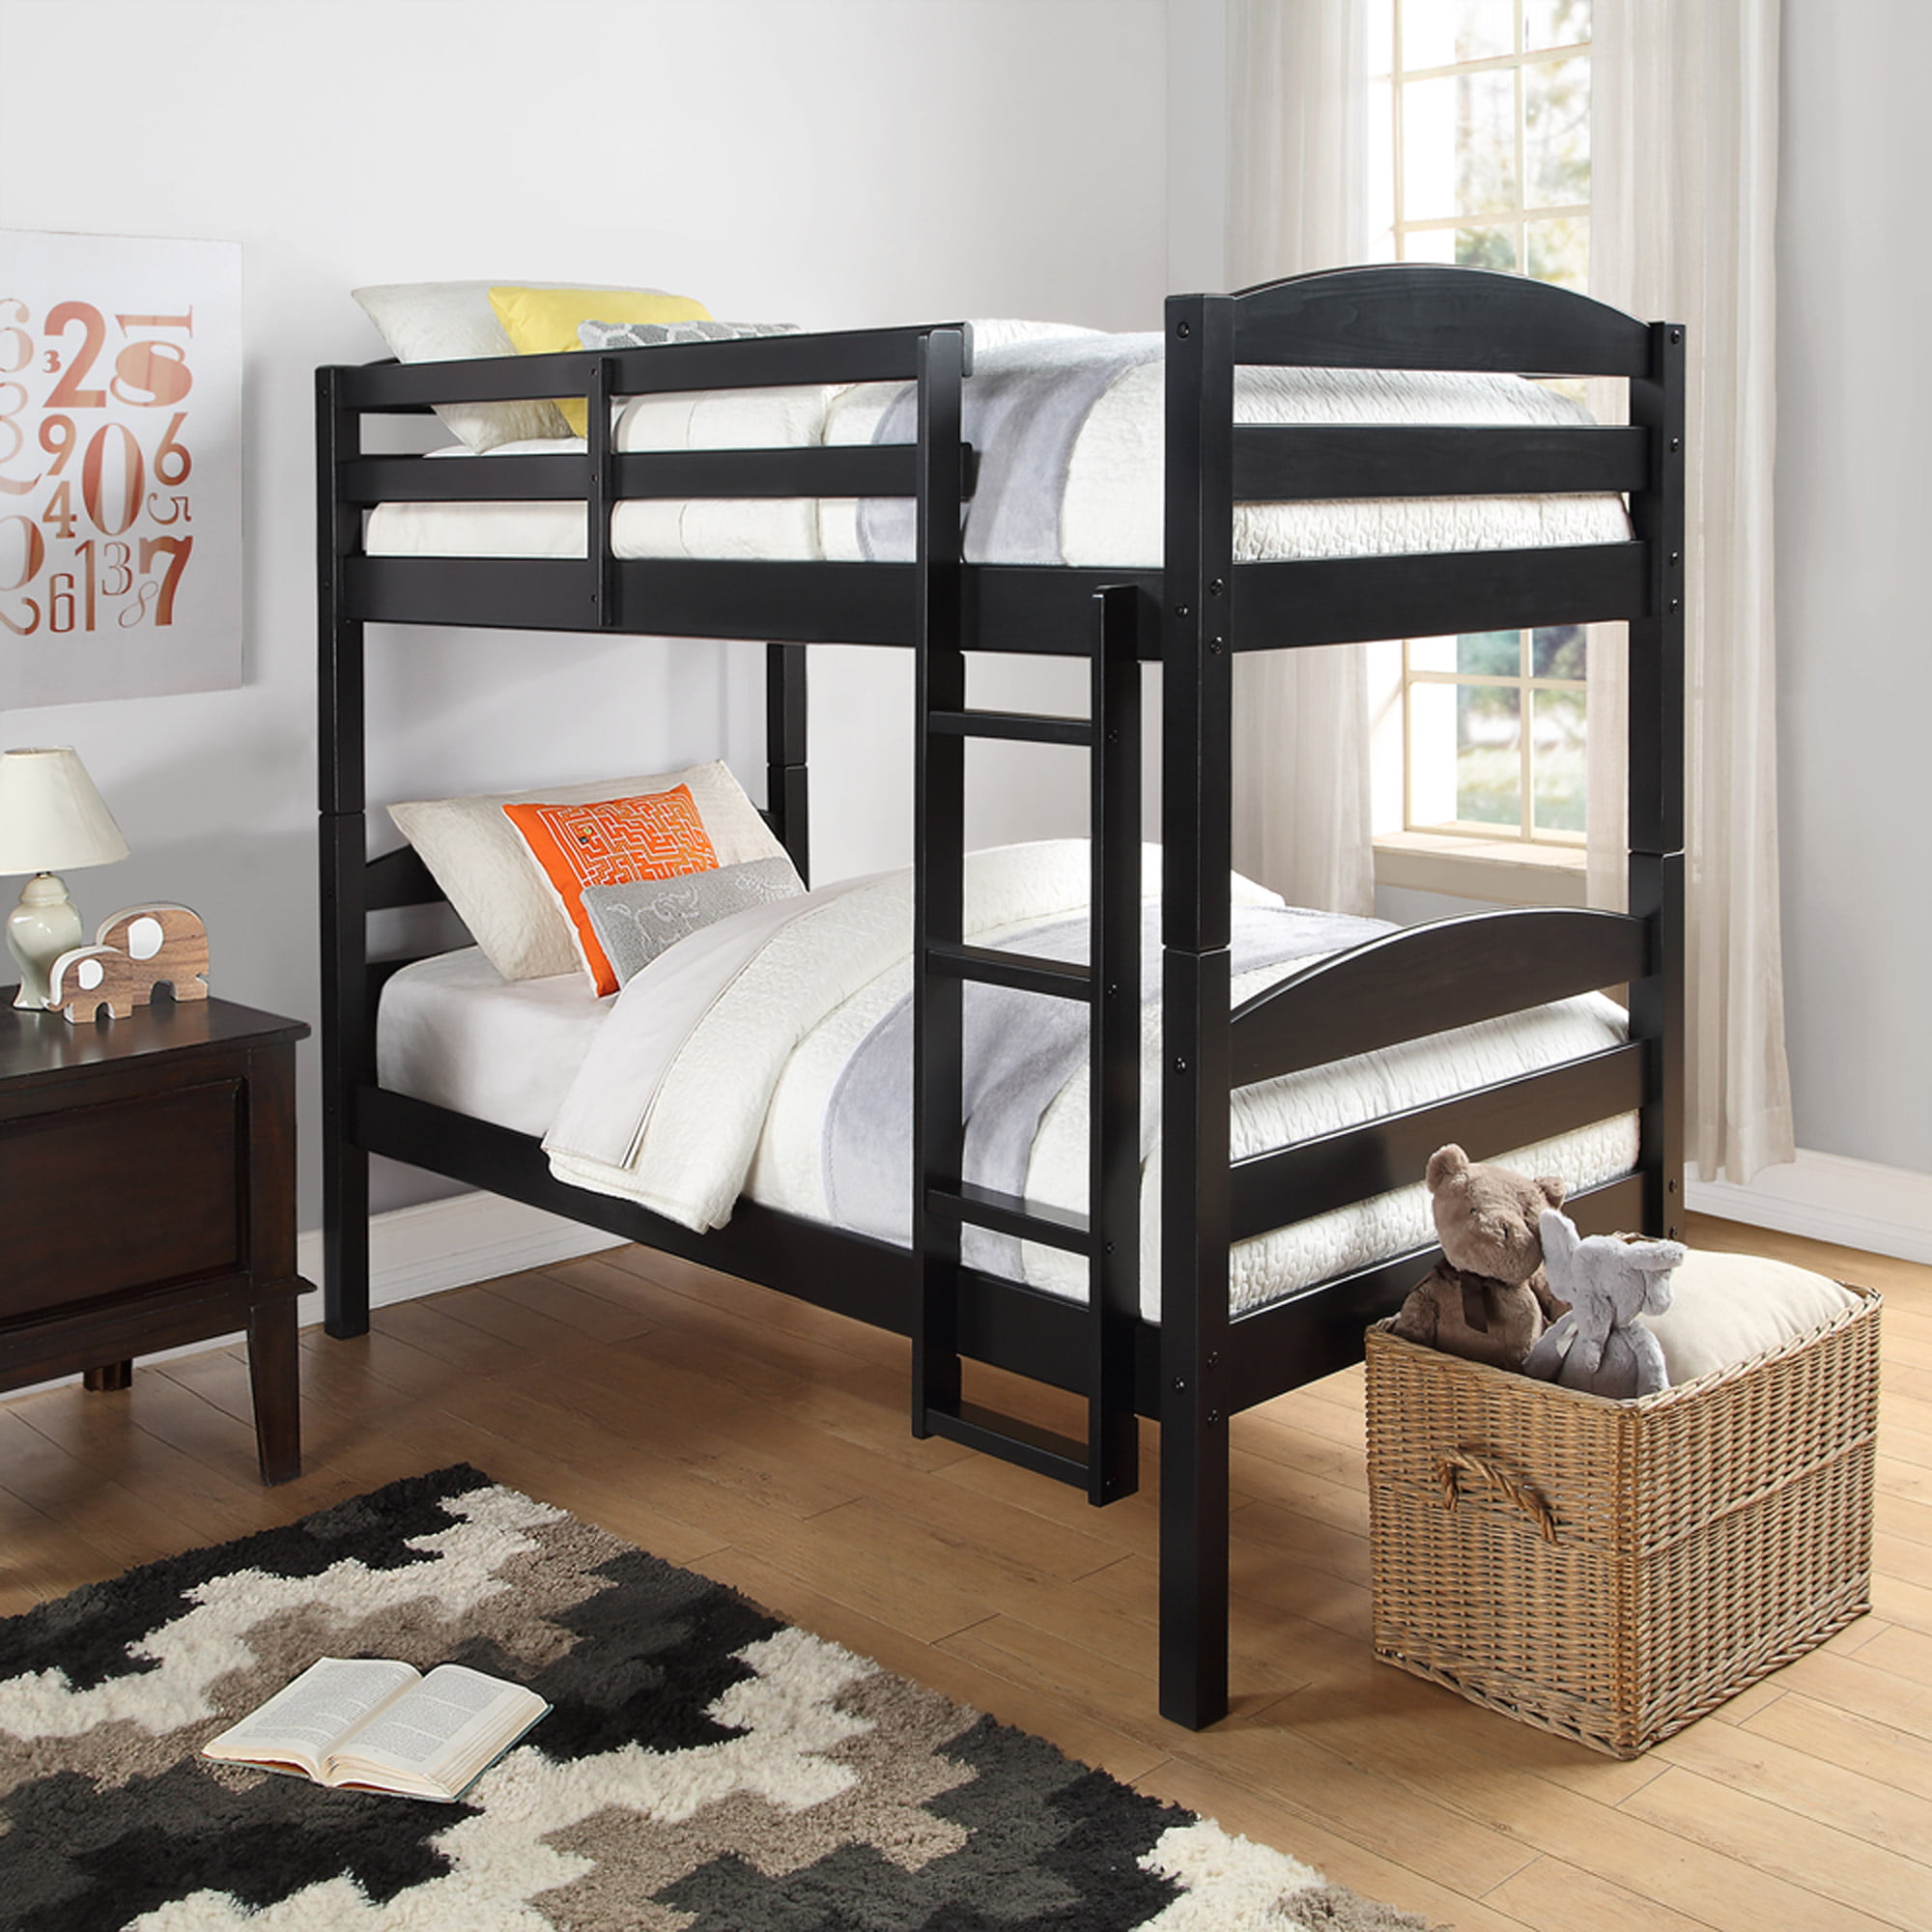 Permalink to 27 new stock of Wood Bunk Beds